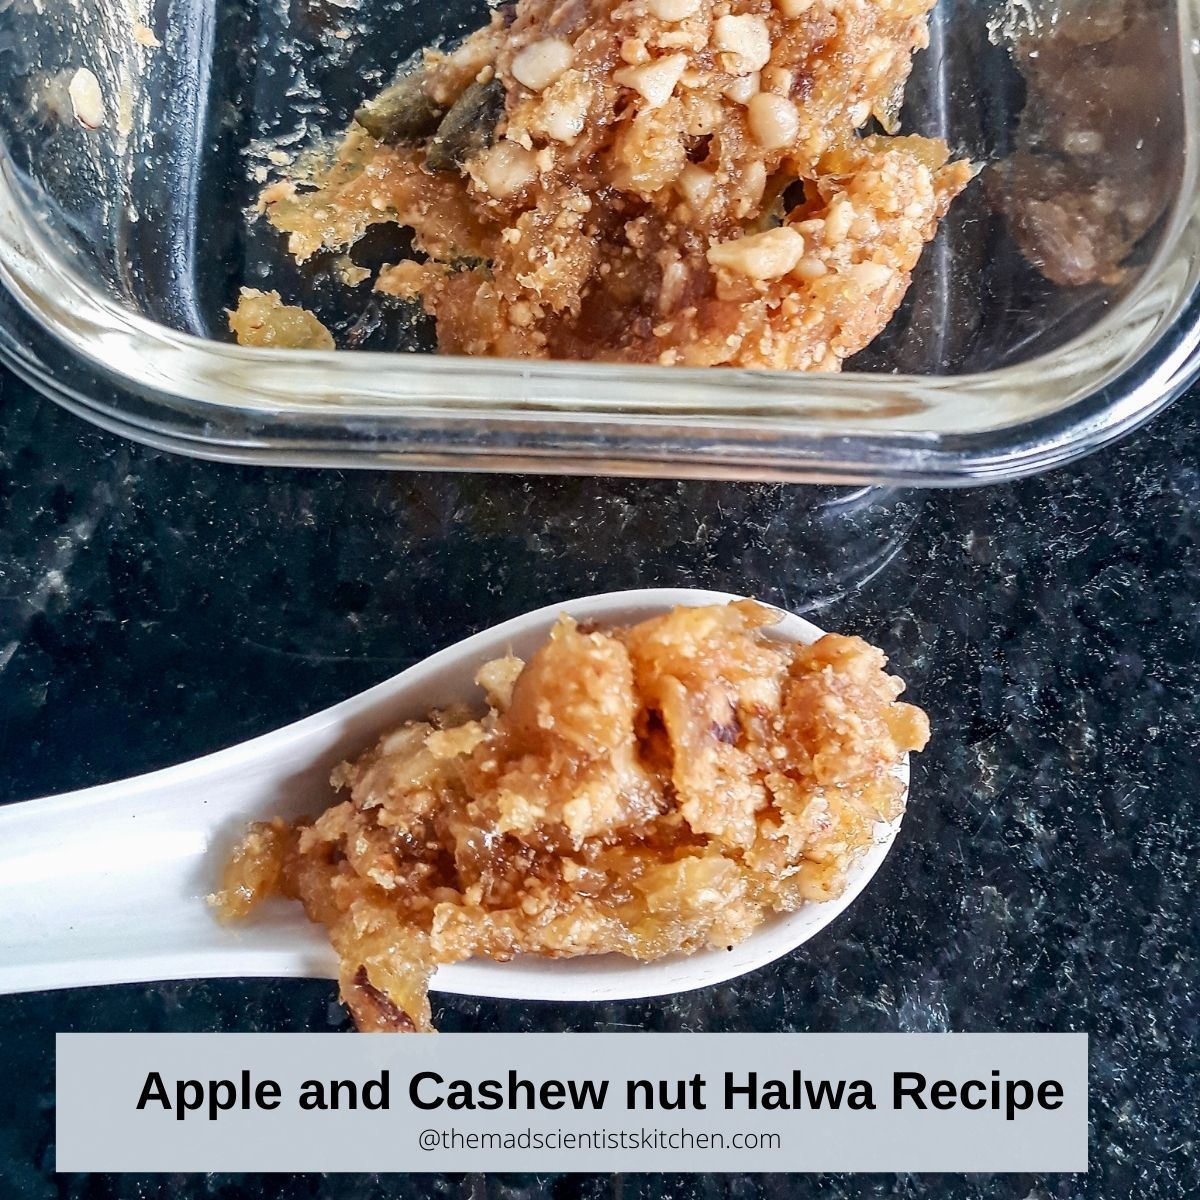 This is the yummiest #dessert Apple and Cashew nut Halwa Recipe. This simple and easy to make Apple pudding is ideal for #Navratri #Diwali and #Thanksgiving. You will fall in love with it, just try it! #ediblegifts   https://t.co/YL6rEtzrwI https://t.co/a2AIlF9O3D